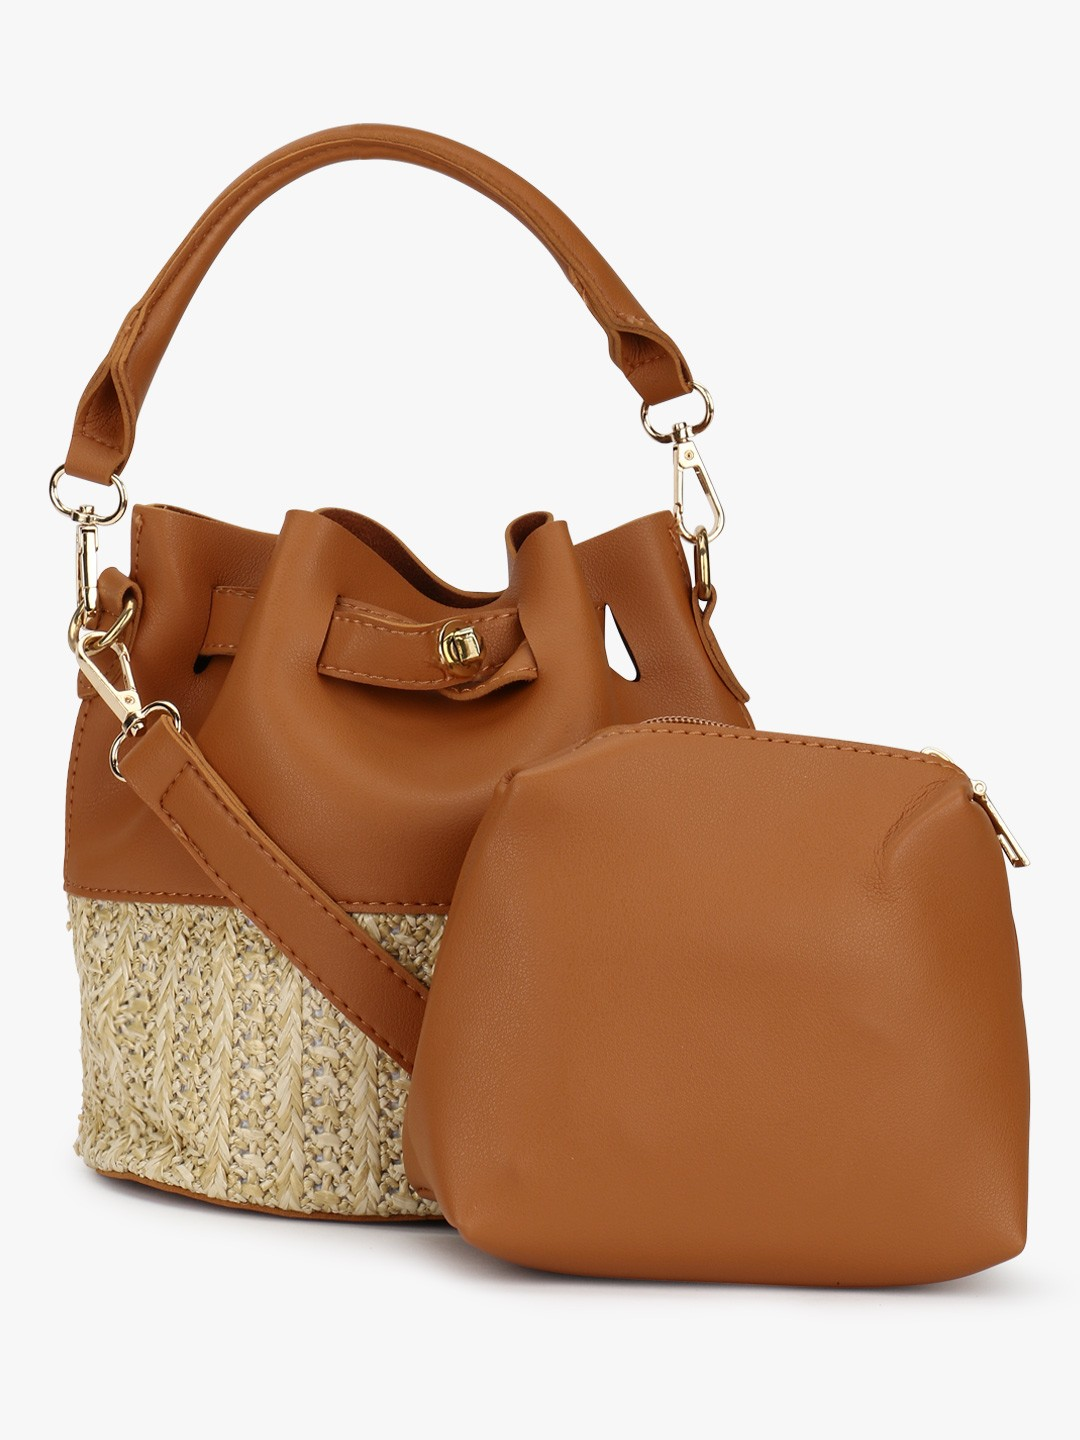 Origami Lily TAN/BEIGE Bucket Bag With Pouch 1